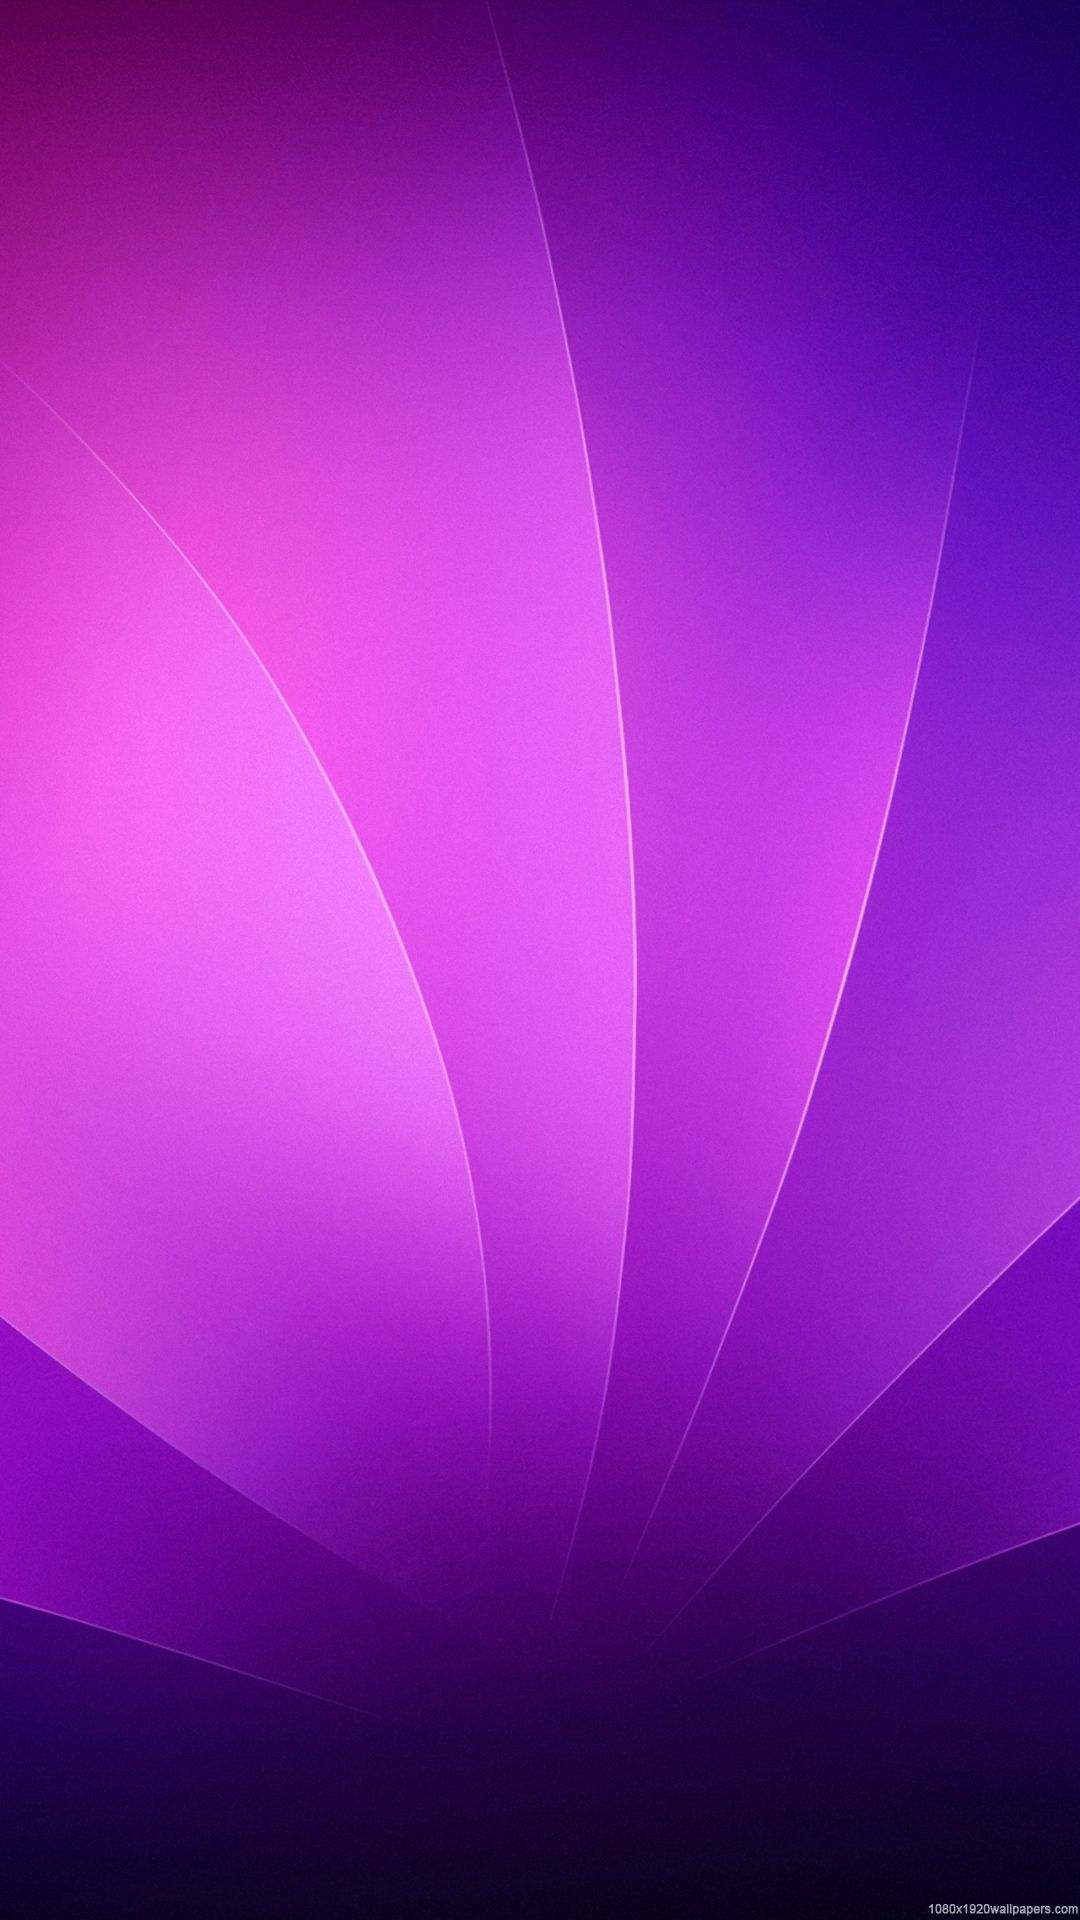 1080x1920 Leaves Line Abstract Purple Wallpapers HD